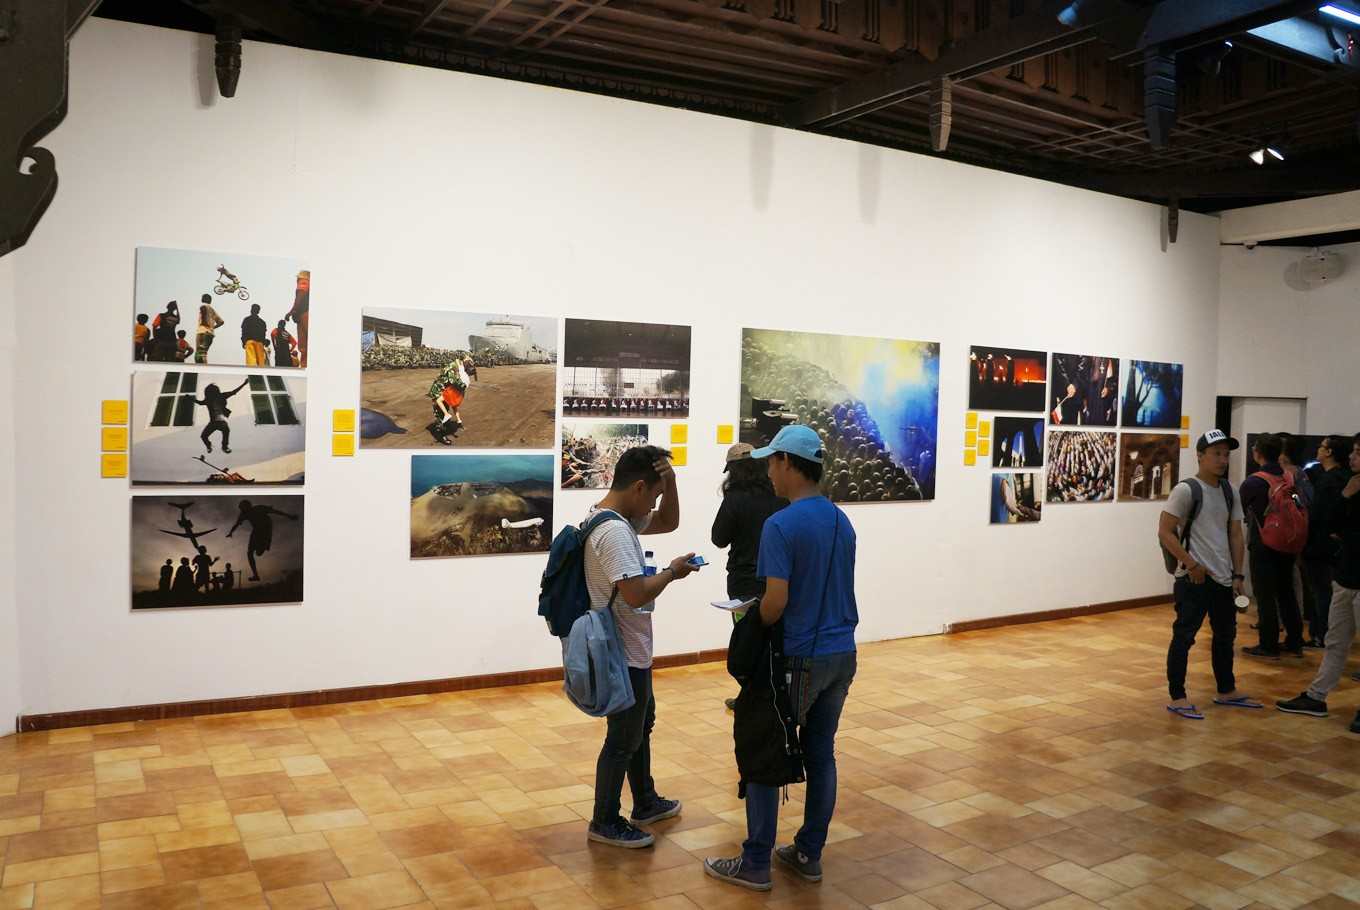 Works displayed in the exhibition. The 100 chosen photos have been taken from the book 'Unpublished' (2014), which comprises works by 22 Kompas photojournalists. (JP/Masajeng Rahmiasri)